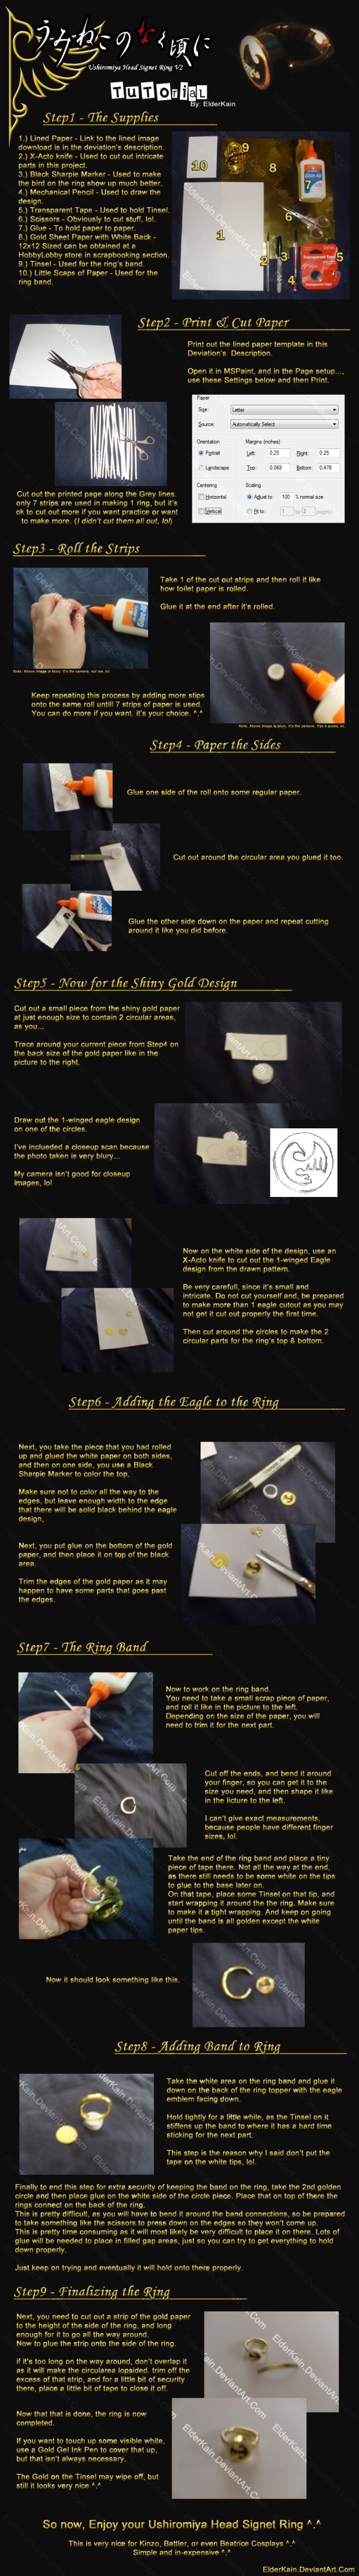 How to Make Ushiromiya Head Signet Ring V2